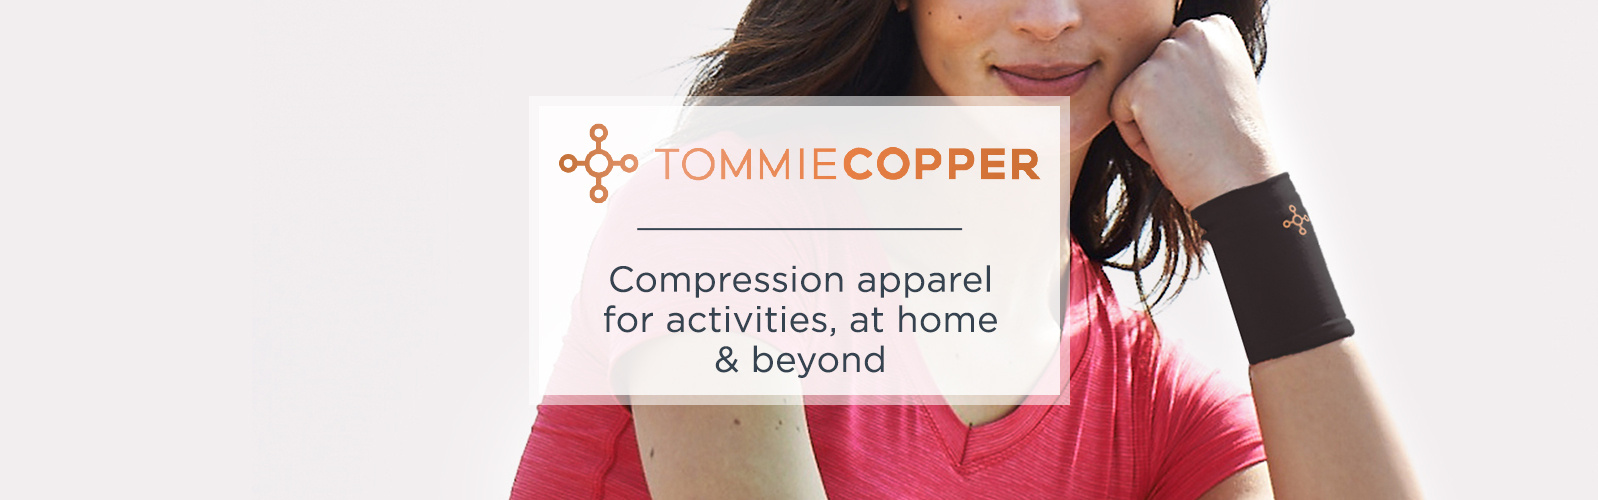 Tommie Copper. Compression apparel for activities, at home & beyond